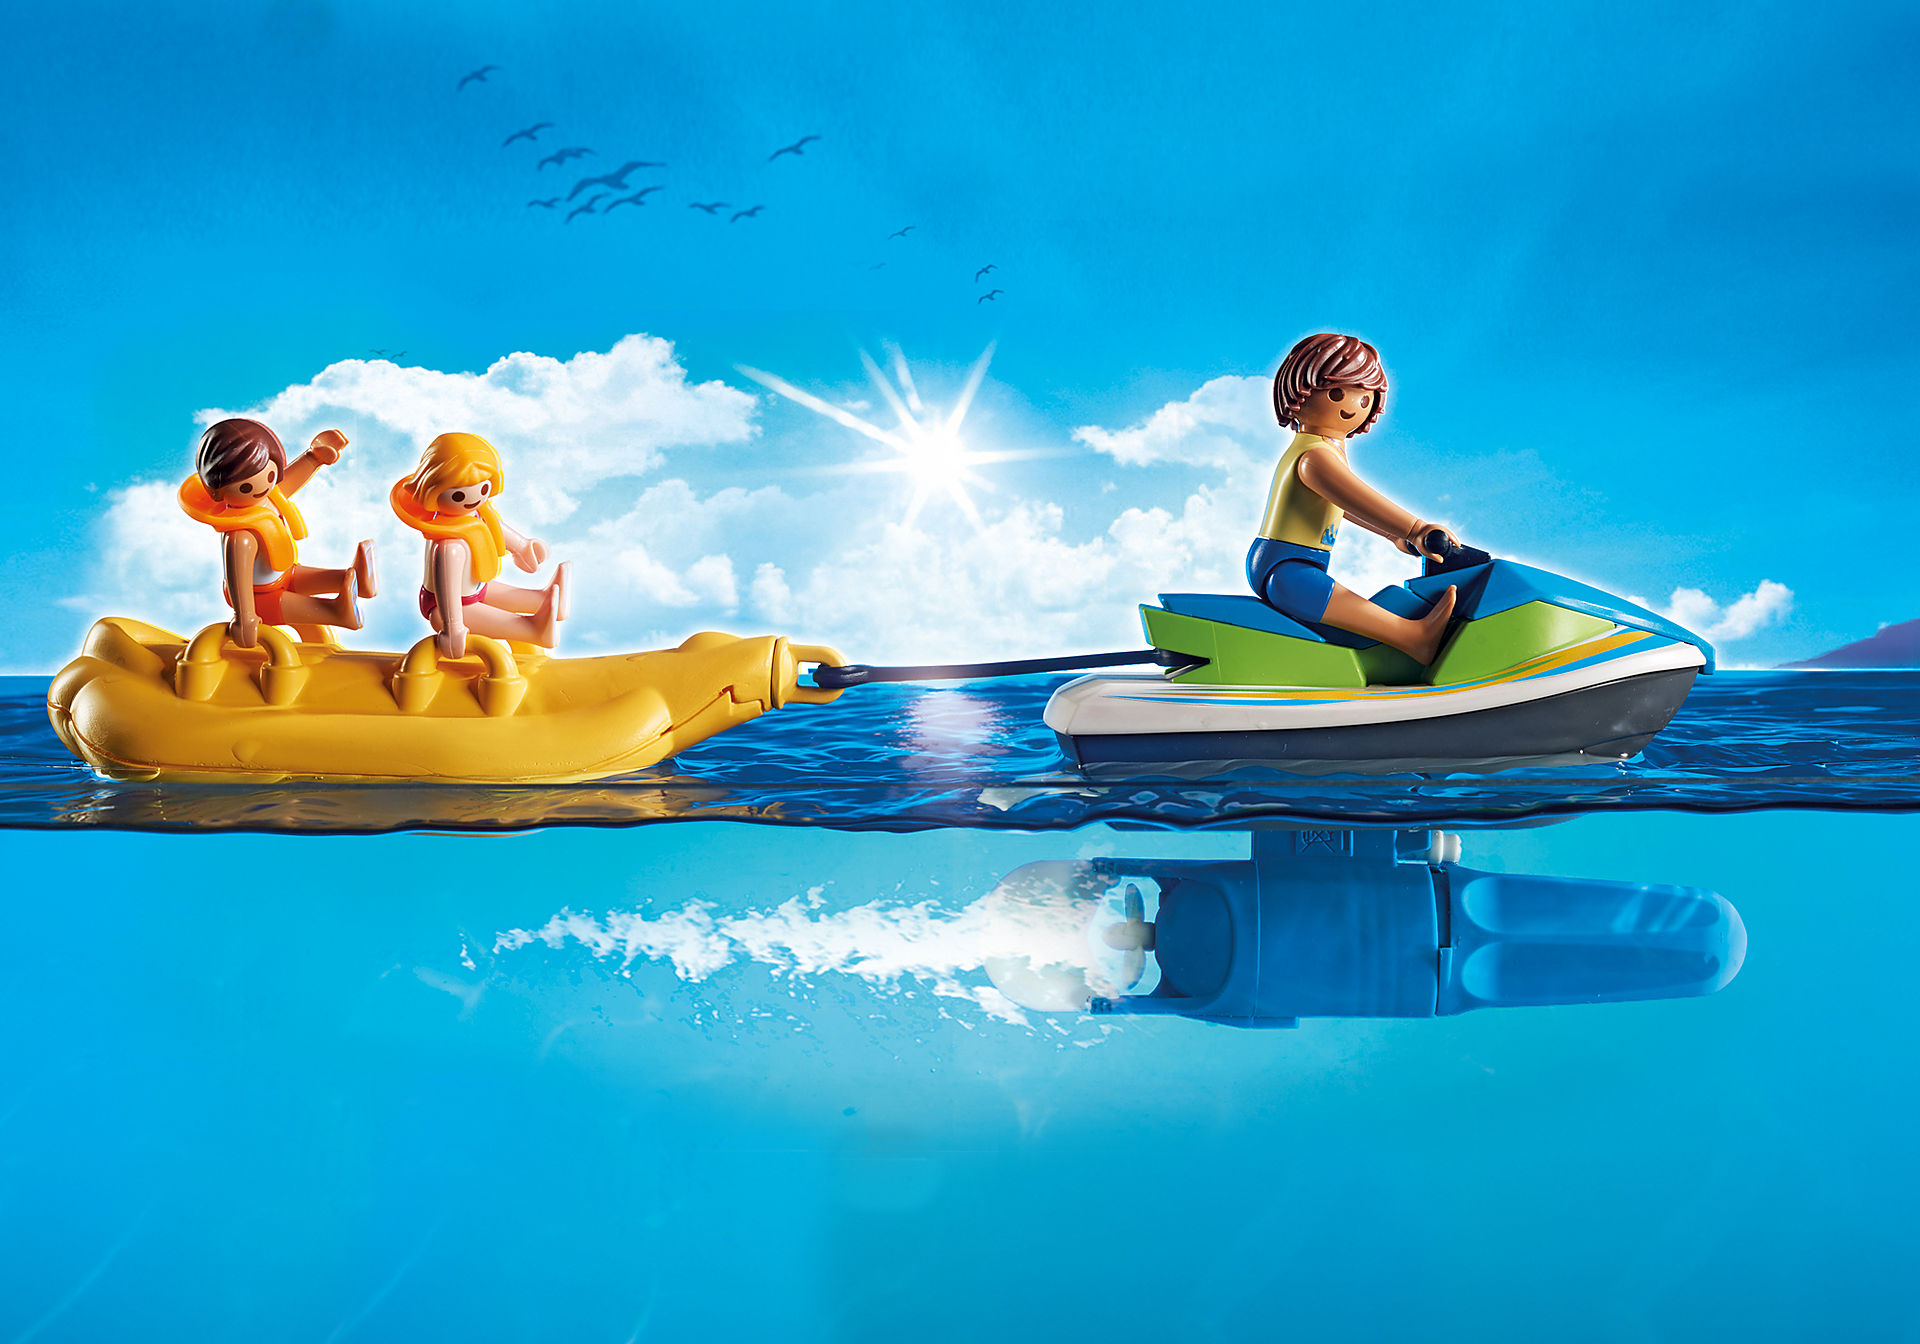 http://media.playmobil.com/i/playmobil/6980_product_extra2/Personal Watercraft with Banana Boat